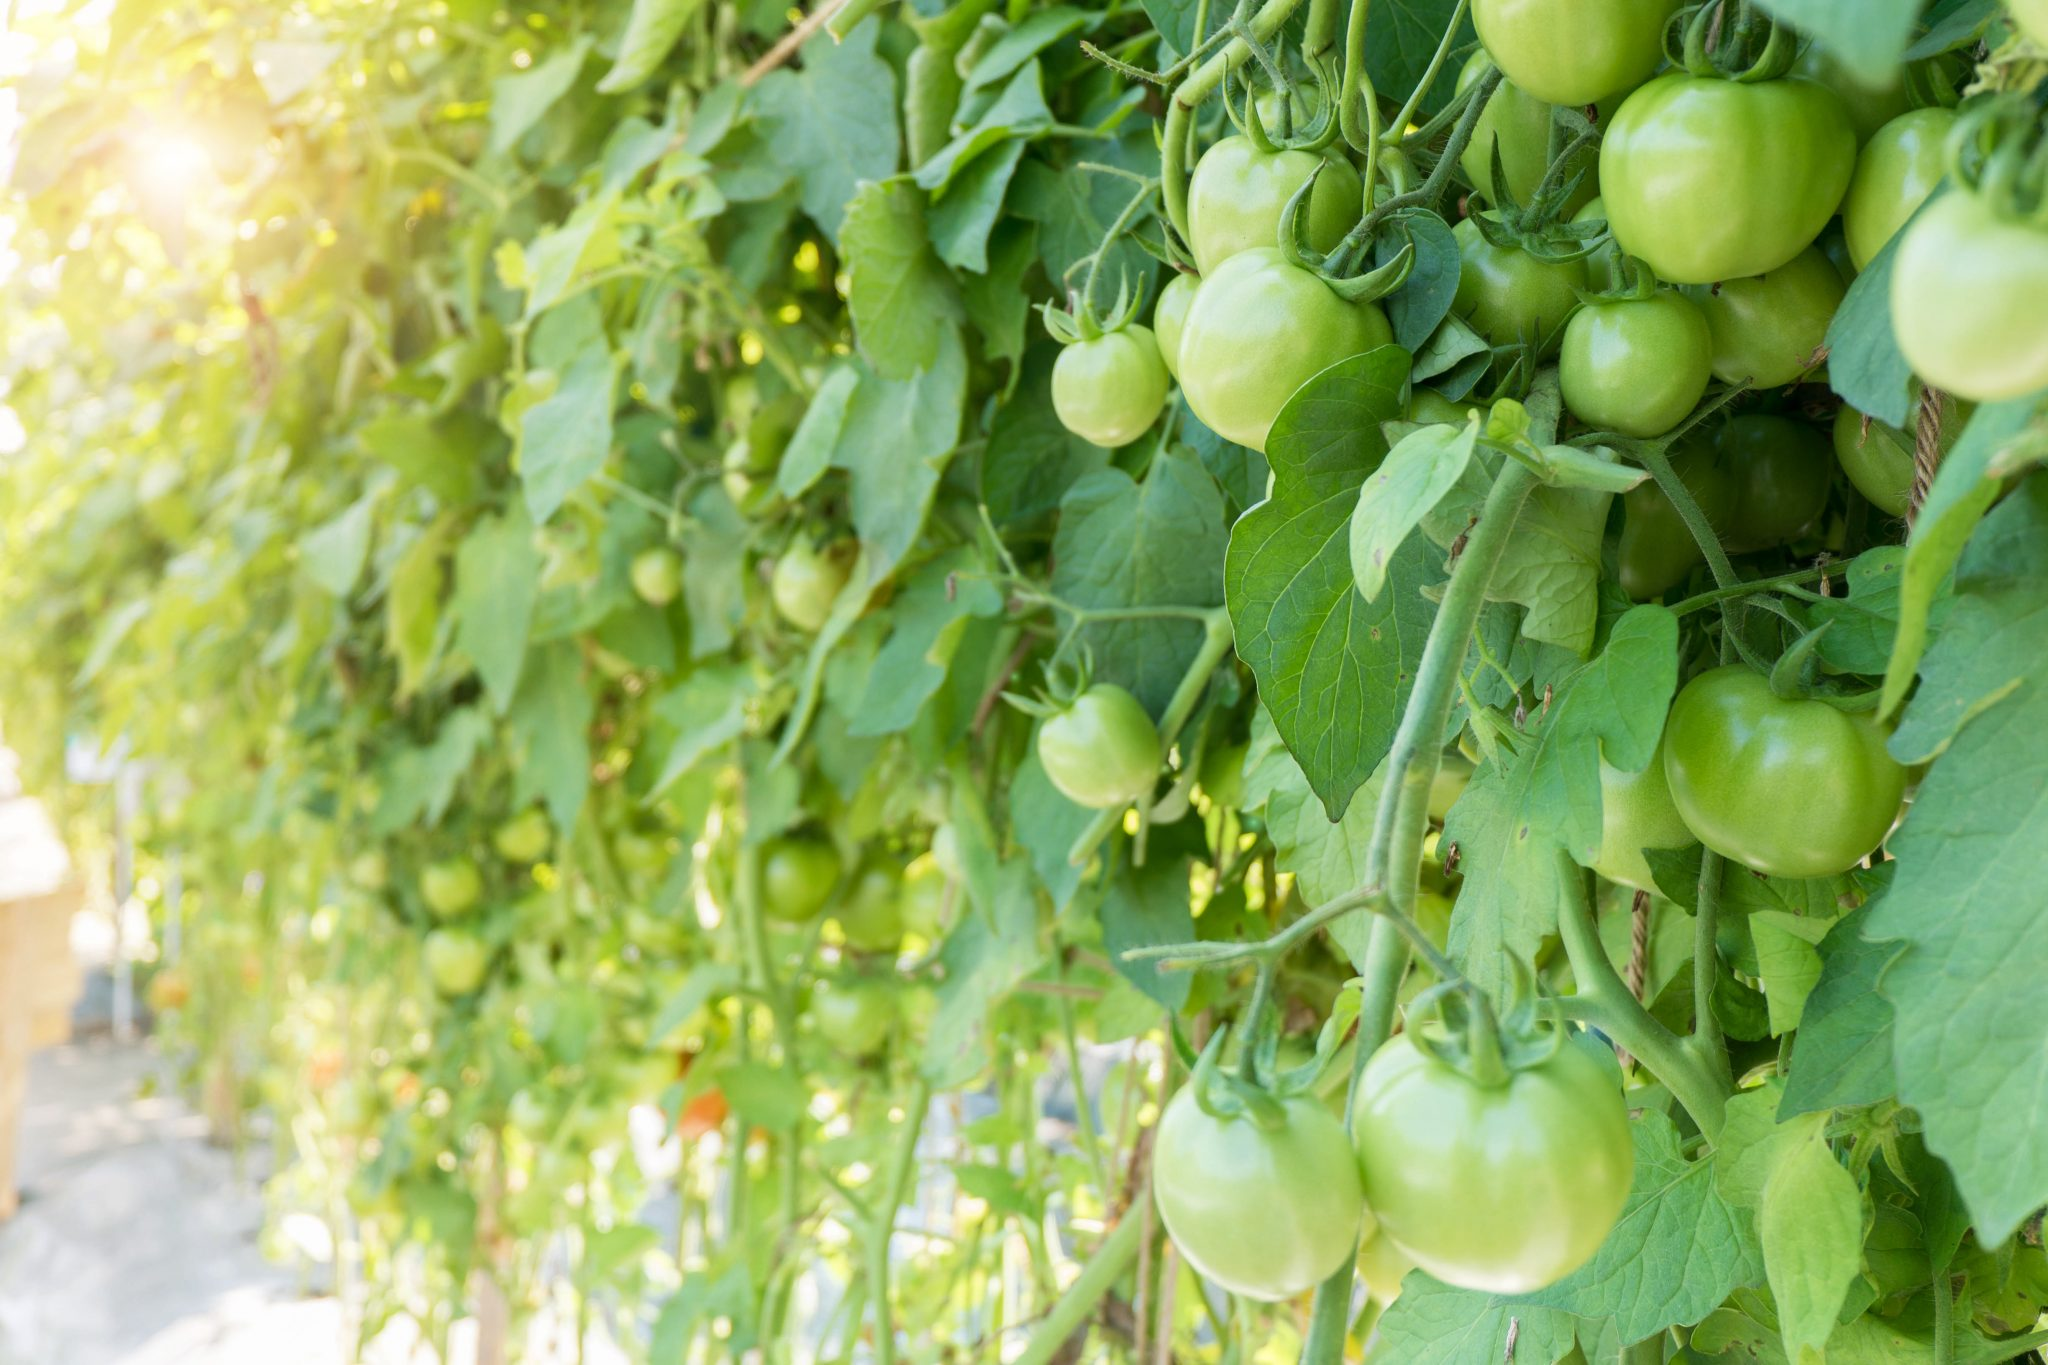 Green tomatoes growing on the plant.